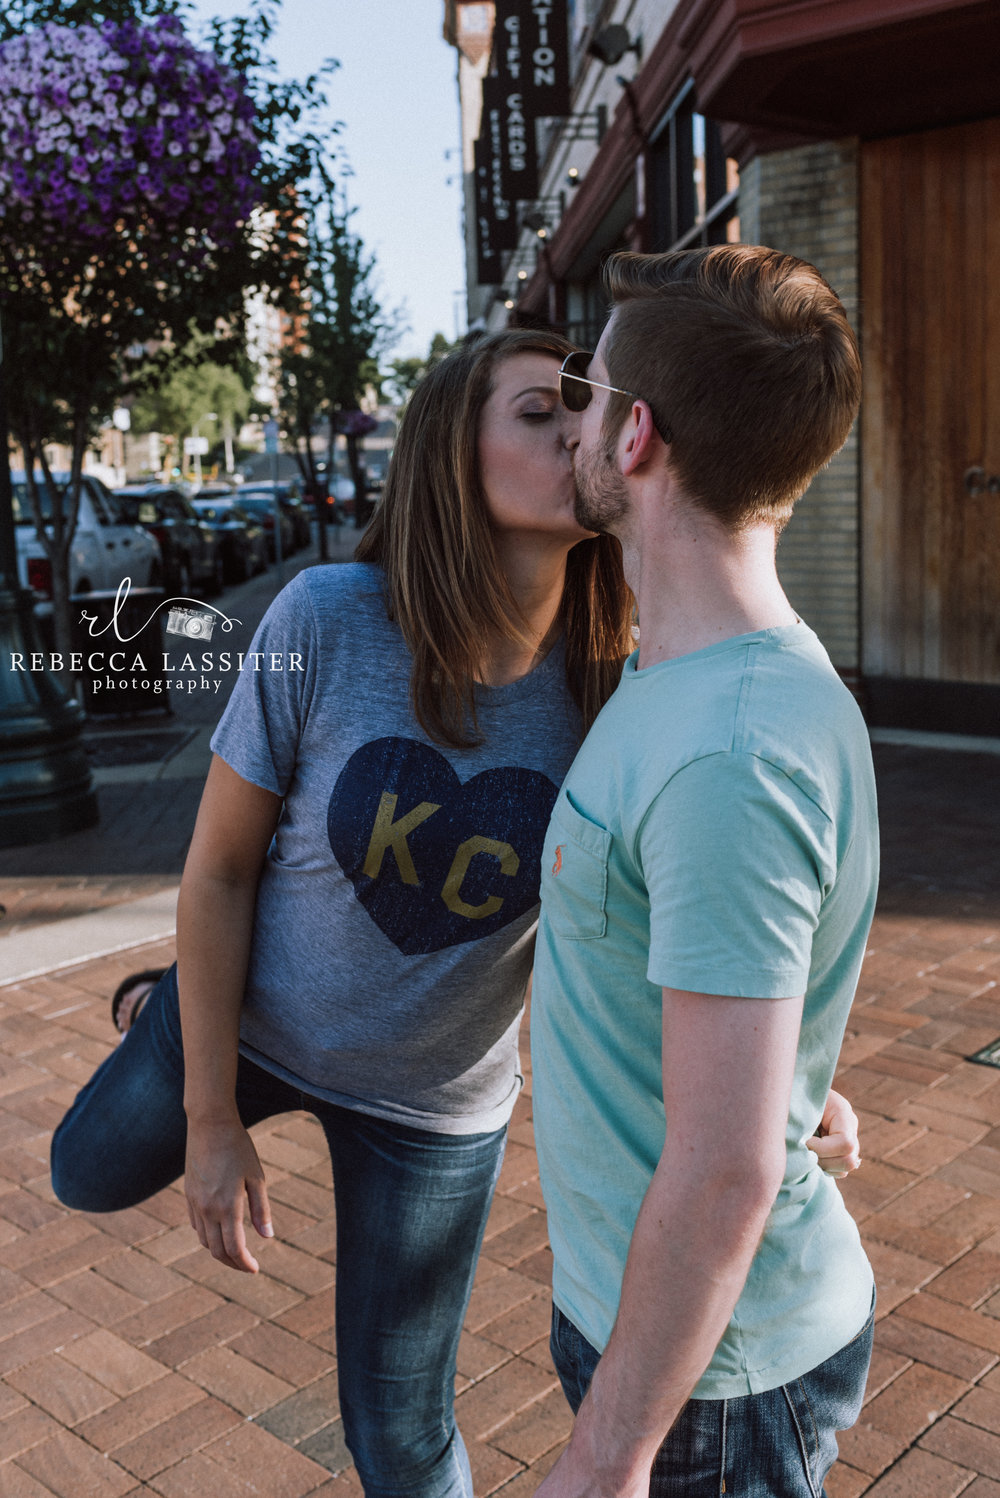 Kisses are Sweet - We were leaving our session when I turned and saw this. Capturing the sweet moments is why I am here.